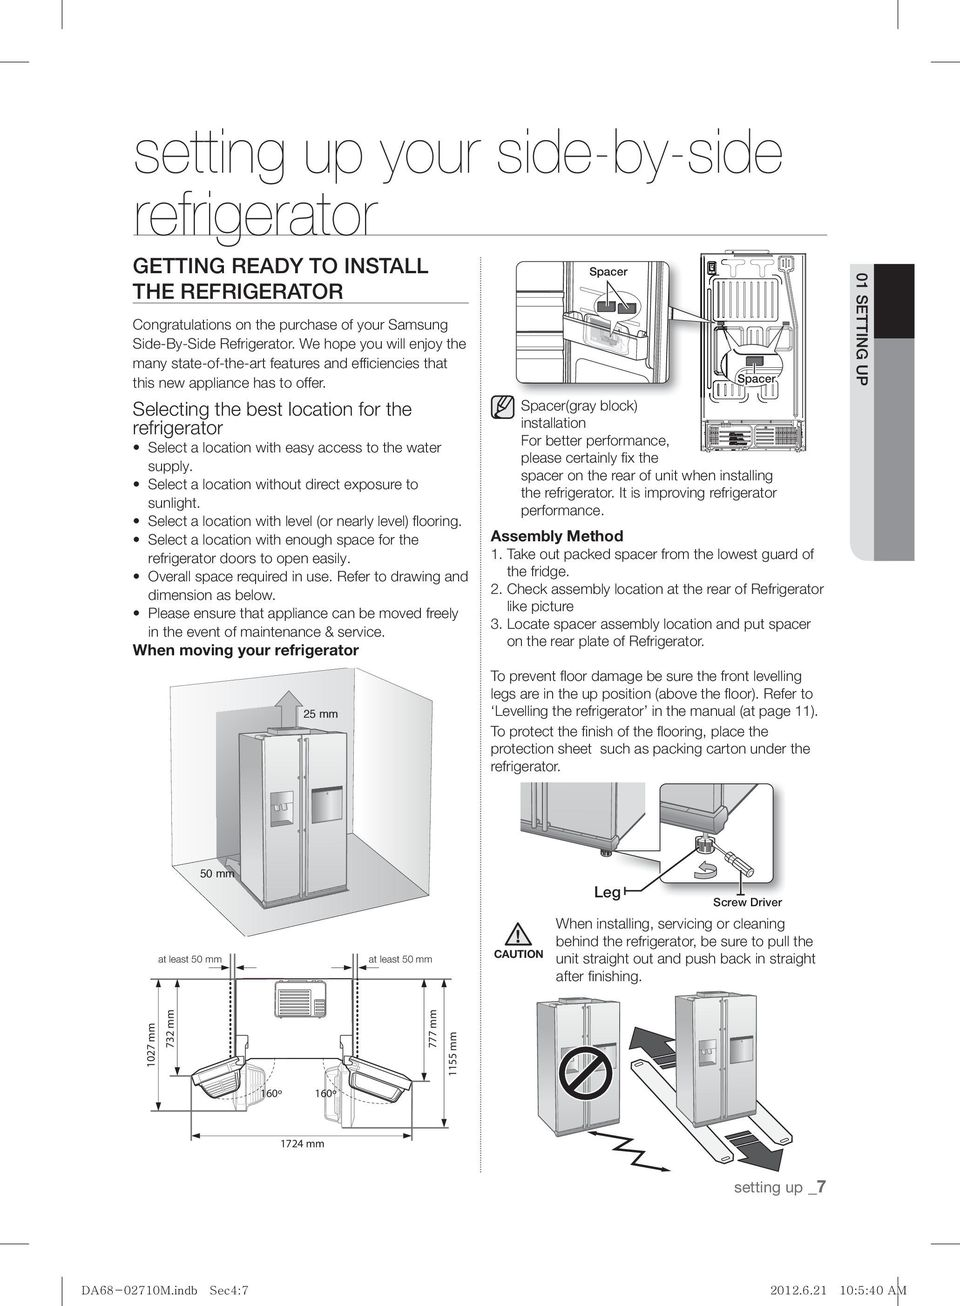 Selecting the best location for the refrigerator Select a location with easy access to the water supply. Select a location without direct exposure to sunlight.